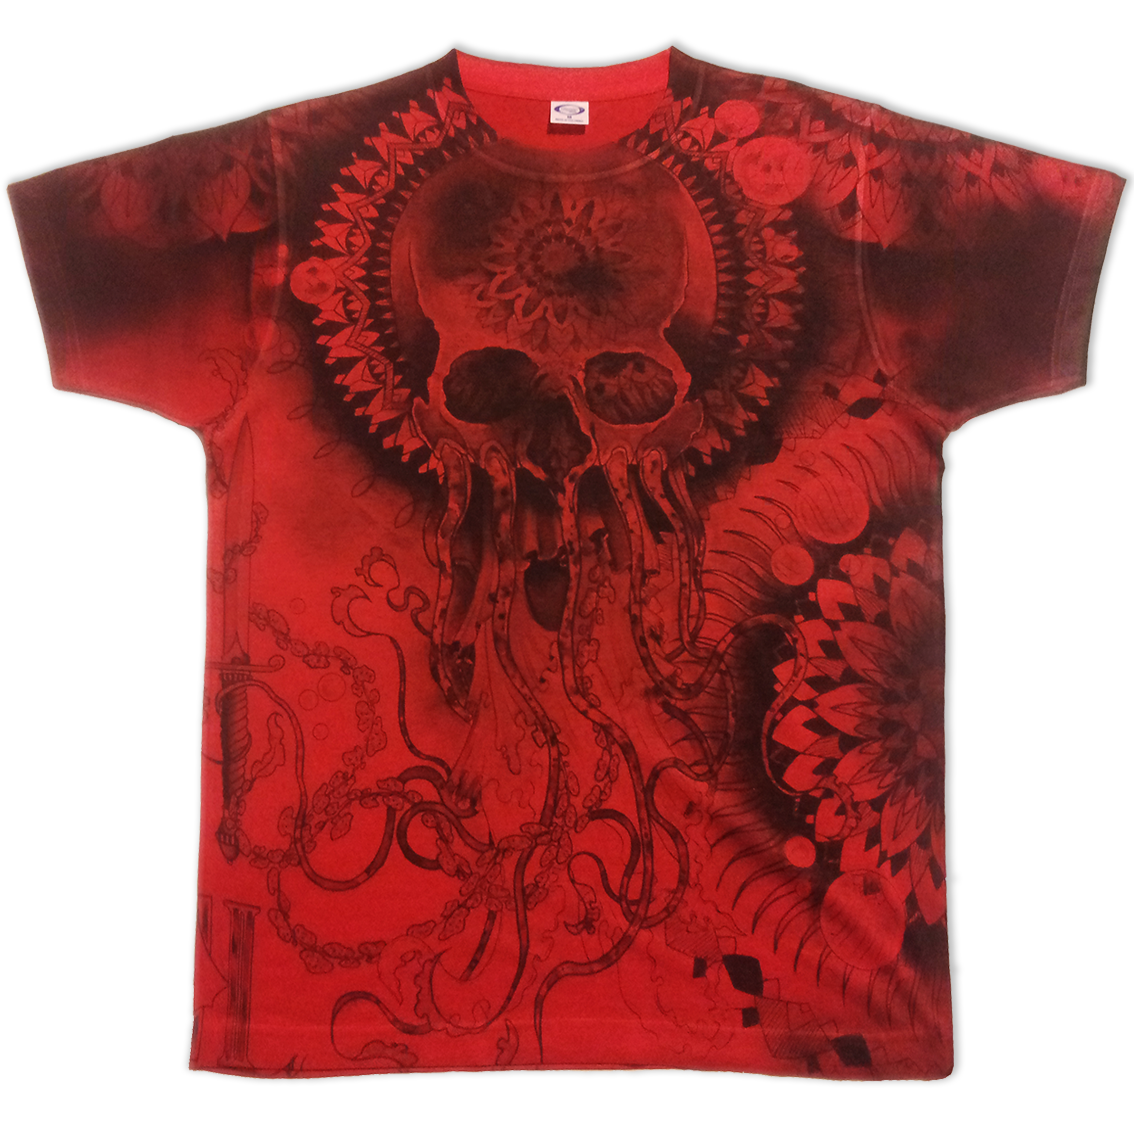 All-over printed red basic t-shirt